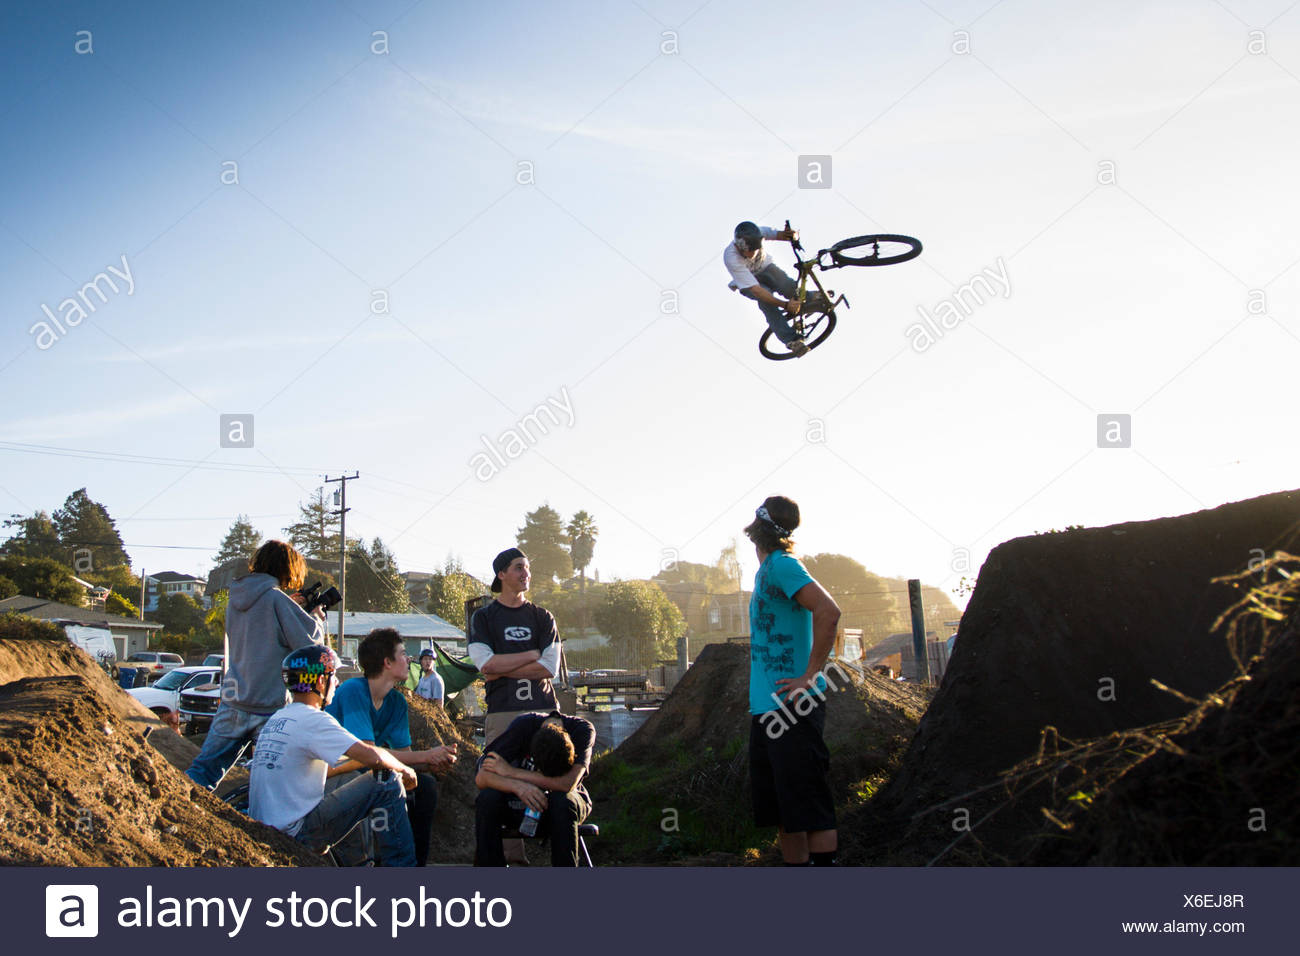 Ryan Howard does a run through the jump as other riders look on. Post Office Jumps, Aptos, CA. Oct 23rd 2009 - Stock Image